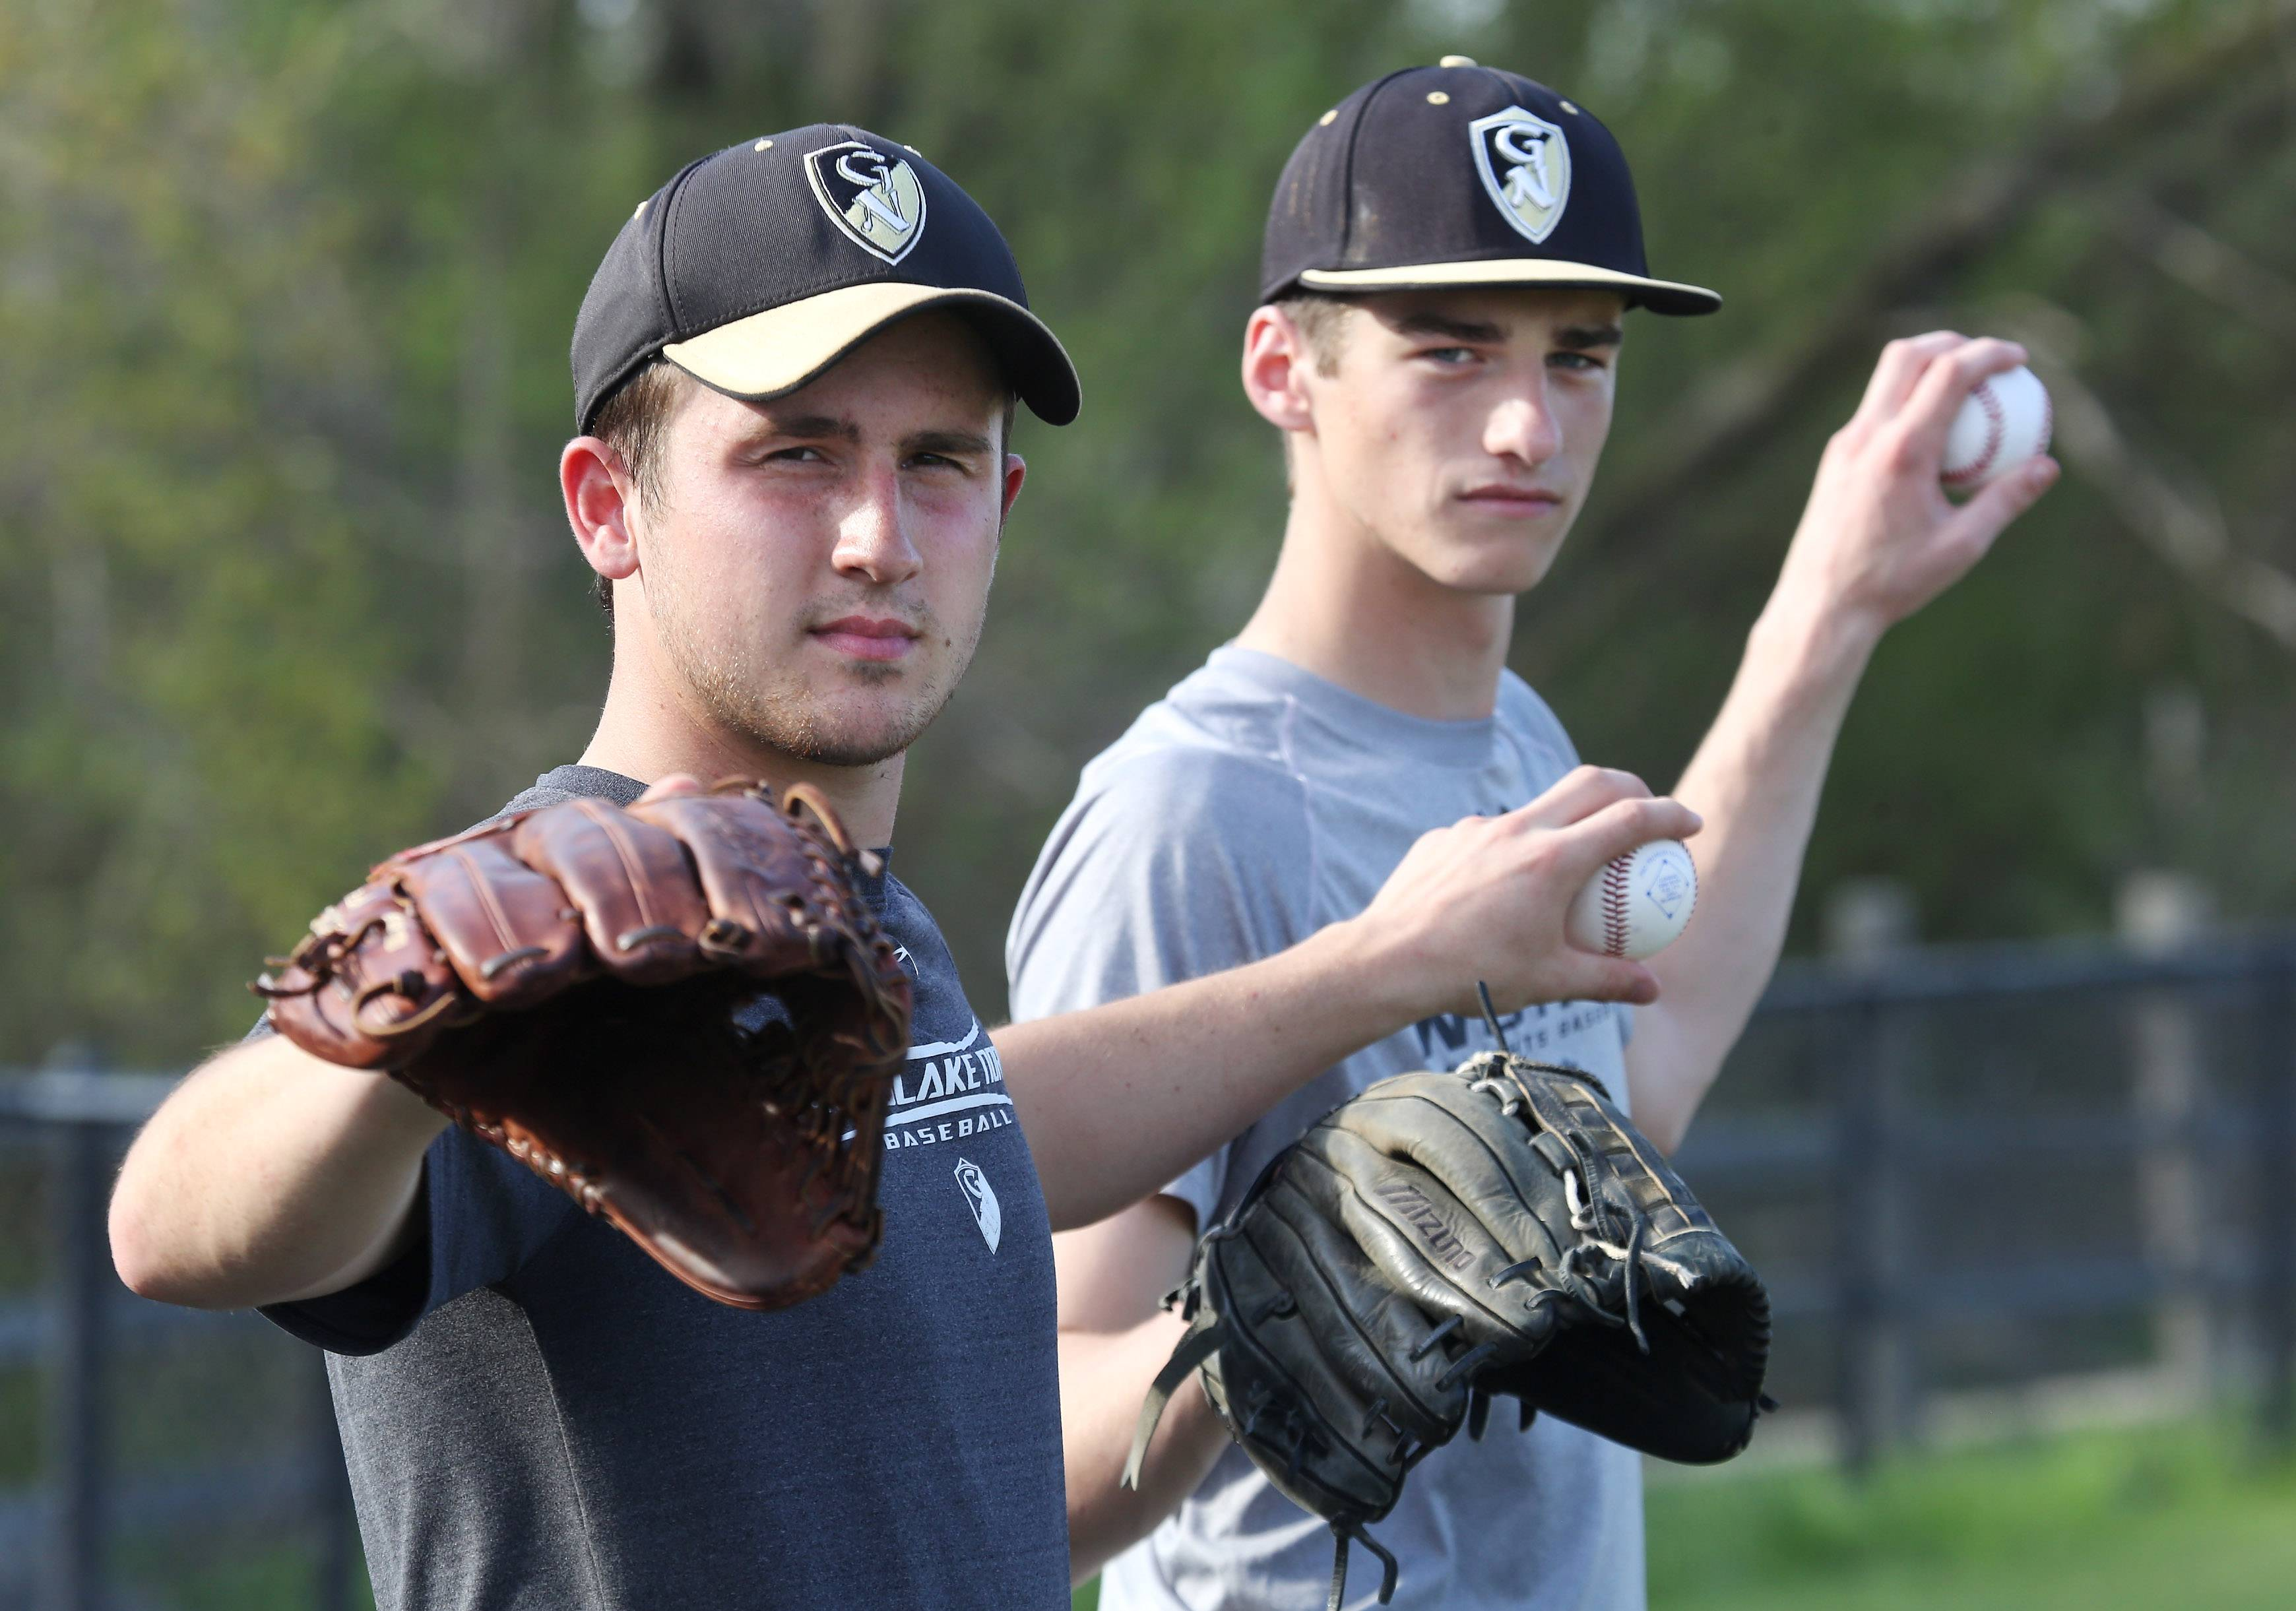 Left-handed pitchers Andrew Mikusa, left, and Domenic DiProva aim to keep their impressive pitching numbers low throughout the spring.